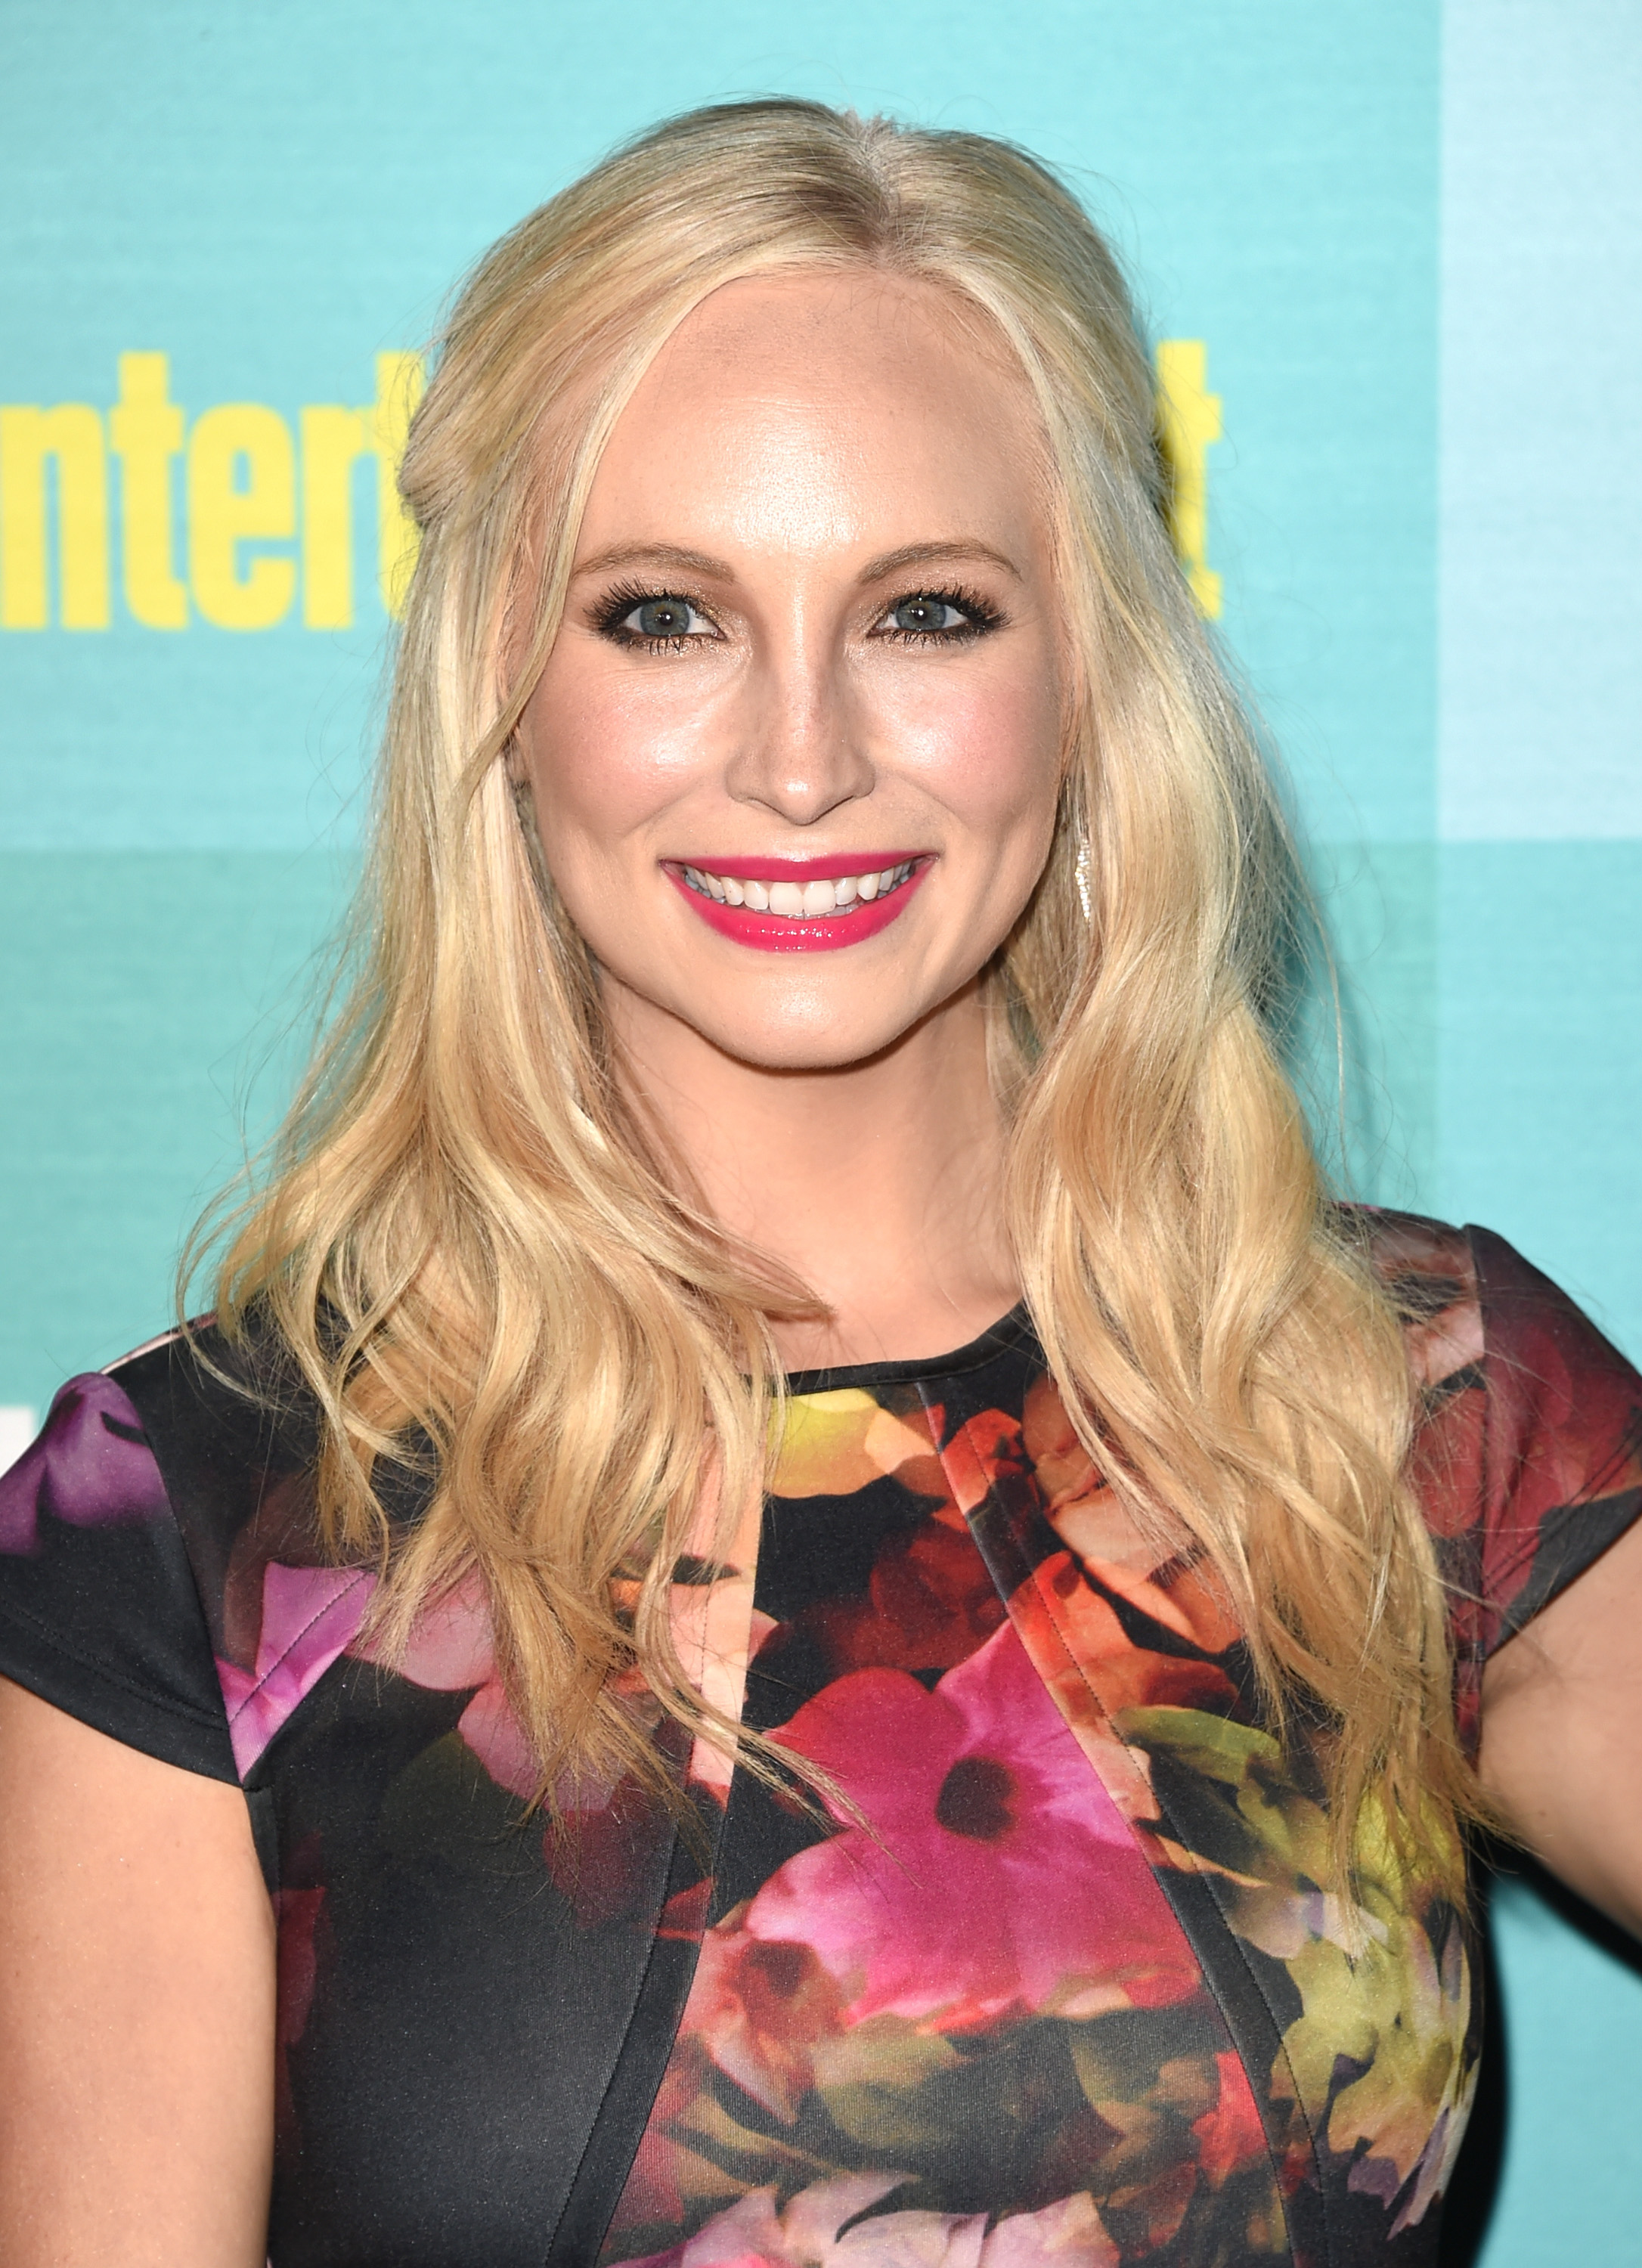 The Vampire Diaries Star Candice Accola Is Pregnant Her Announcement Would Be Caroline Forbes Approved Photo